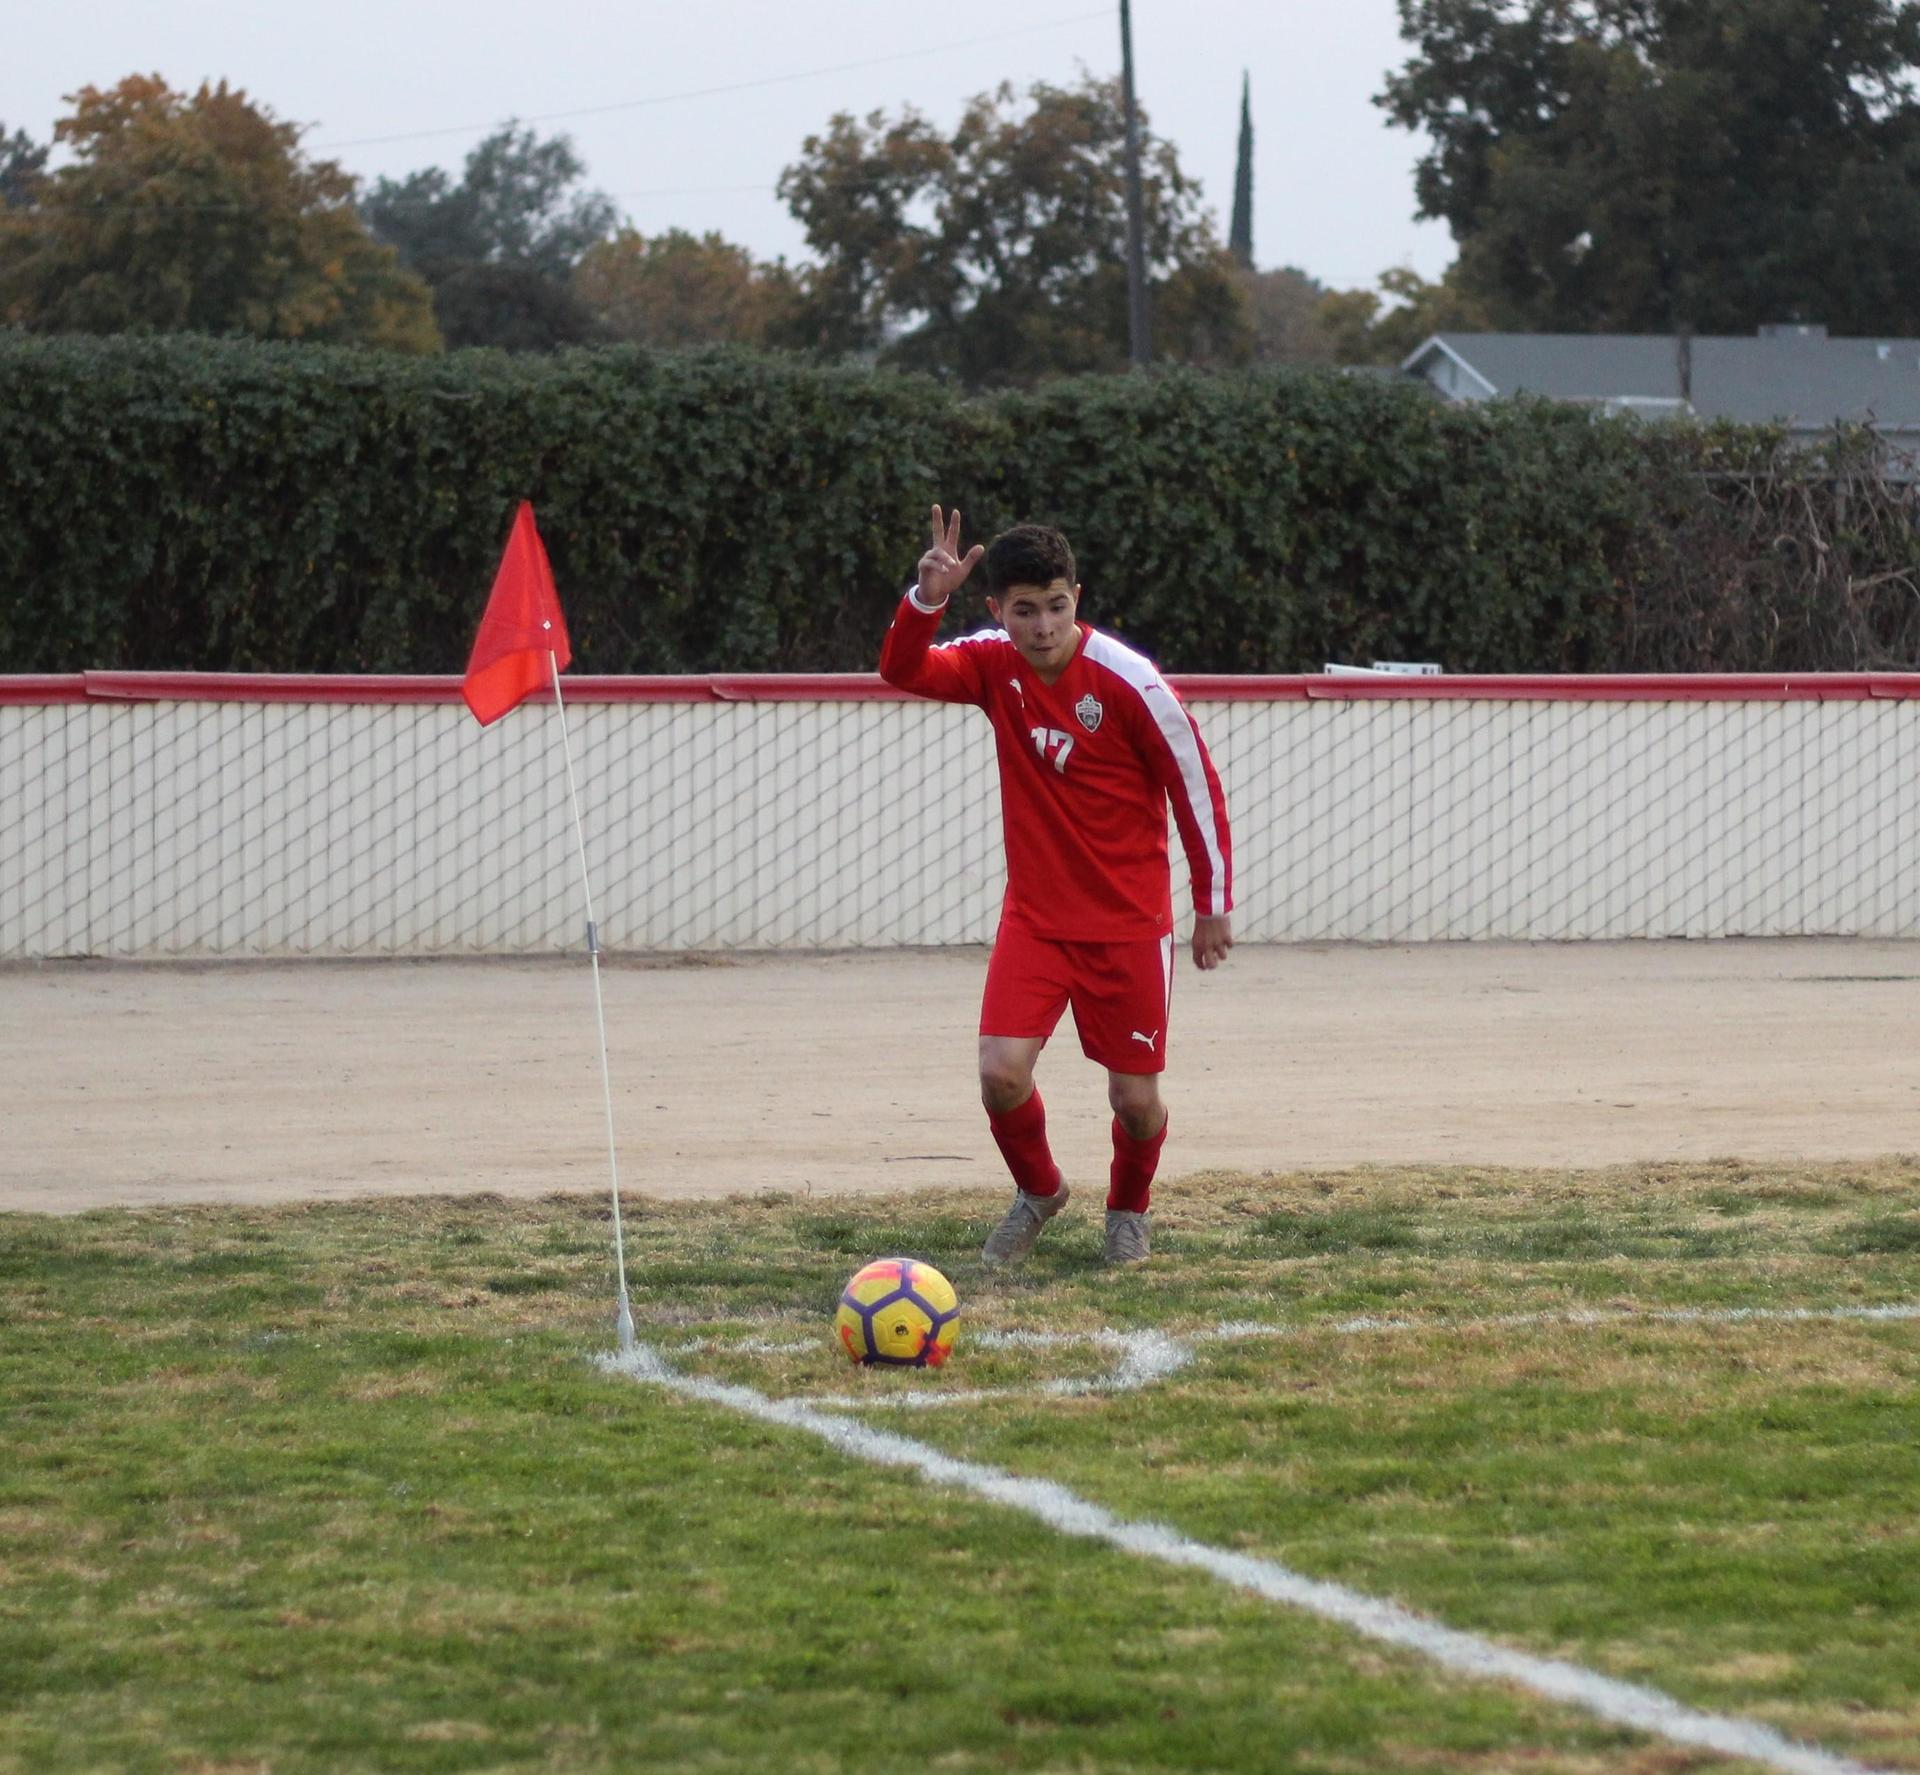 Luis Barajas Running to Kick the Ball